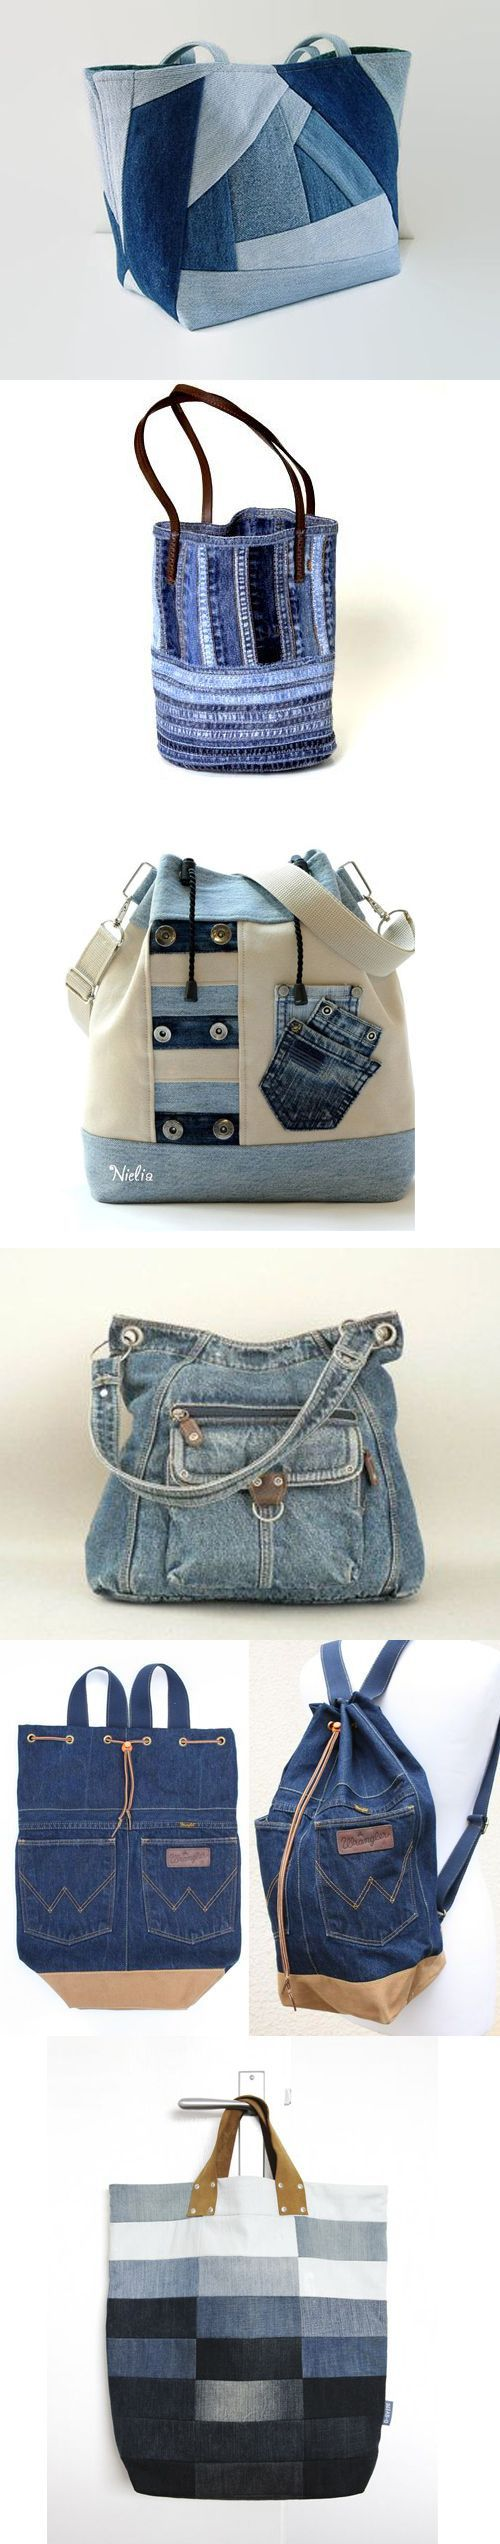 Patchwork denim bags